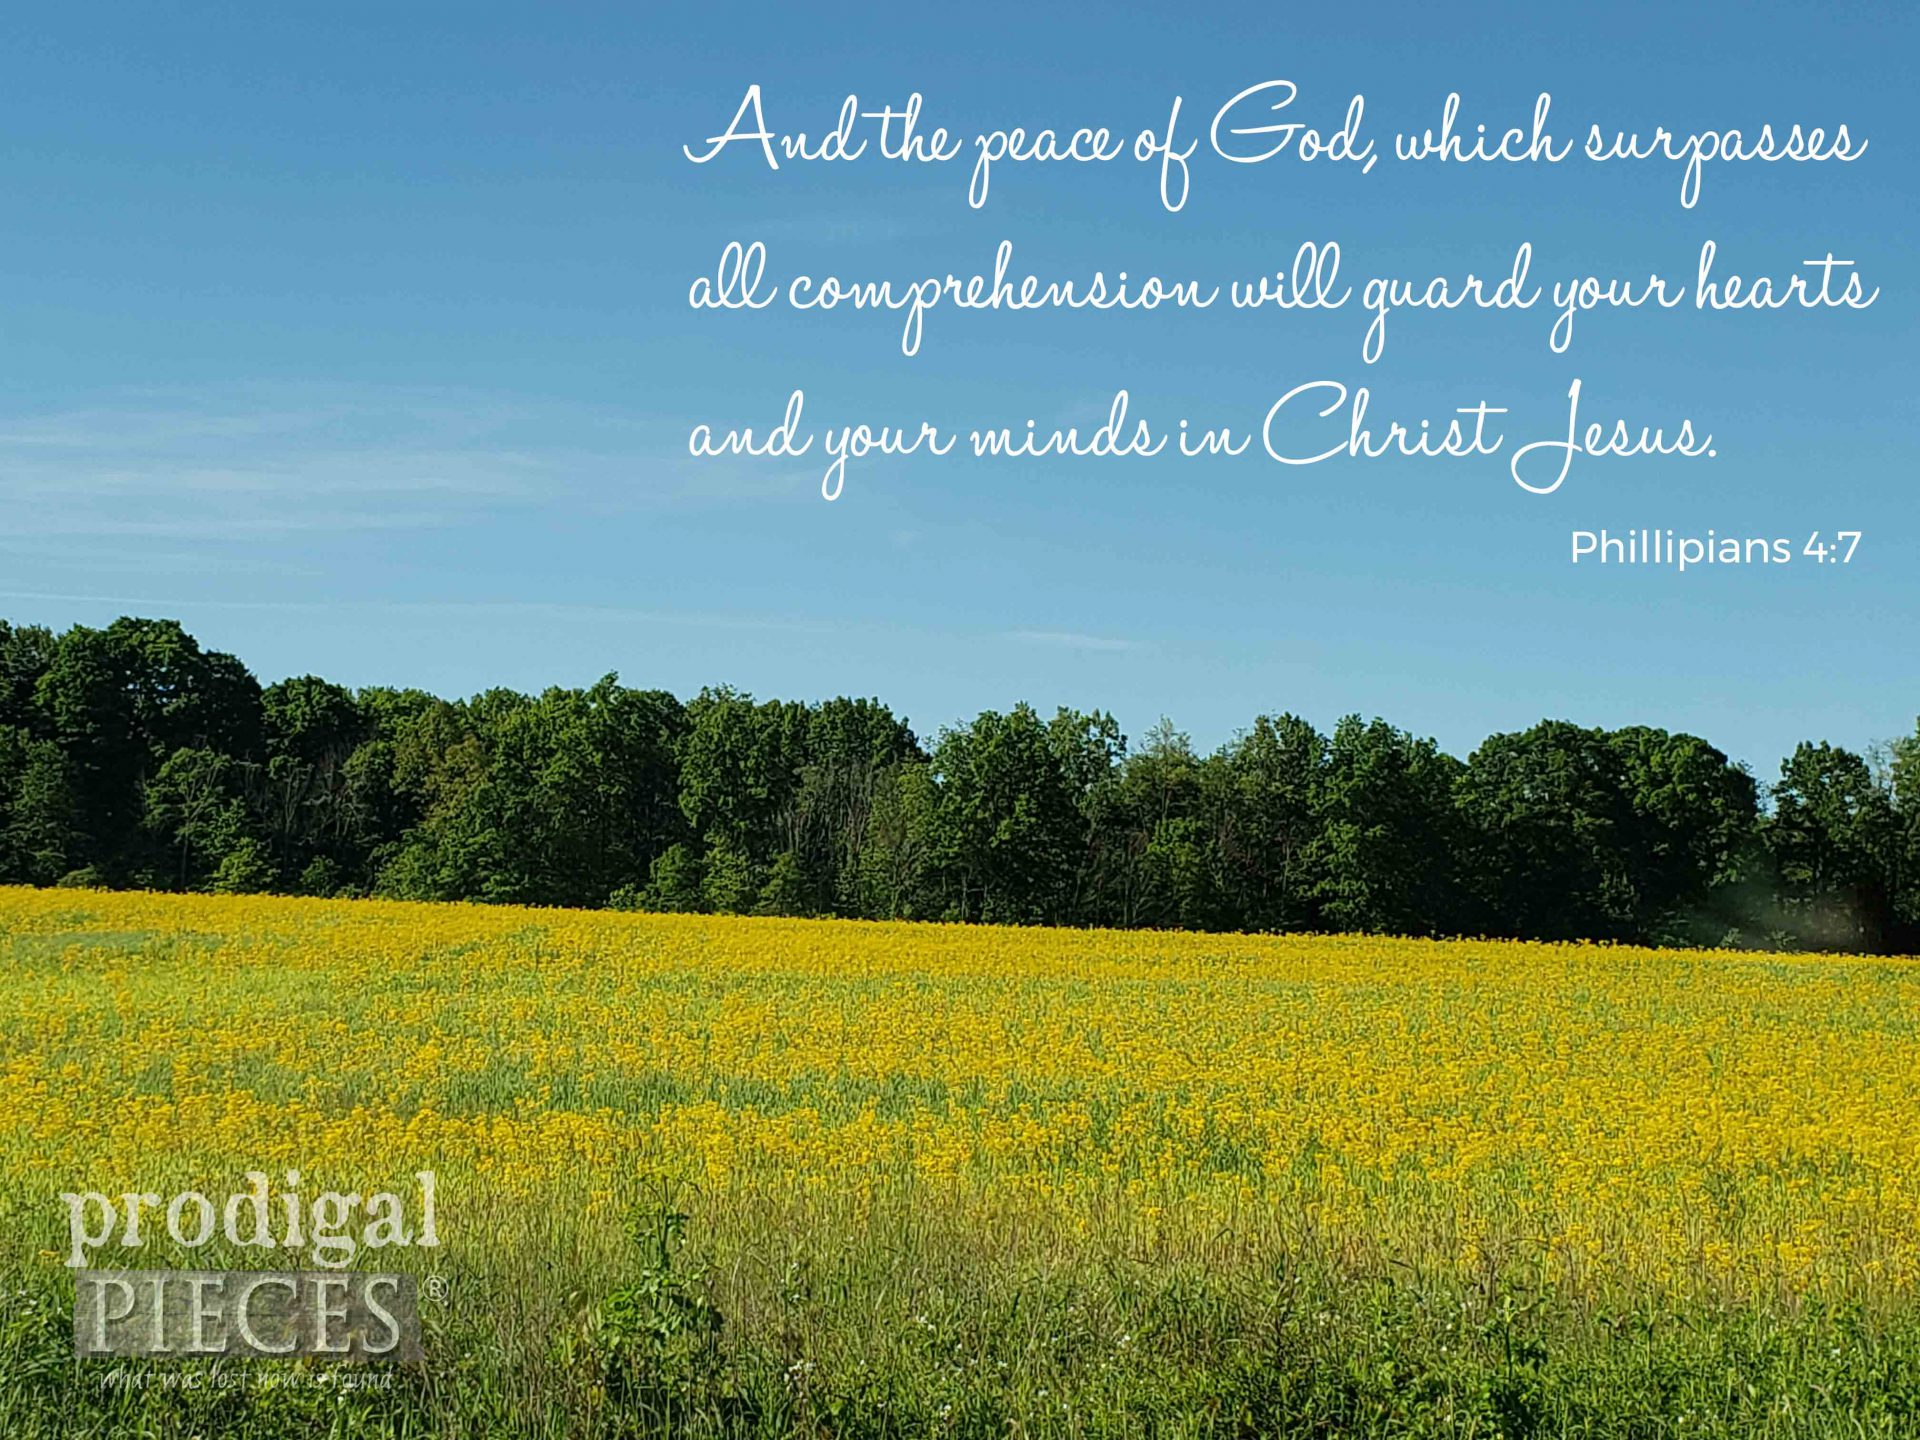 Philippians 4:7 Scripture and Nature by Prodigal Pieces | prodigalpieces.com #prodigalpieces.com